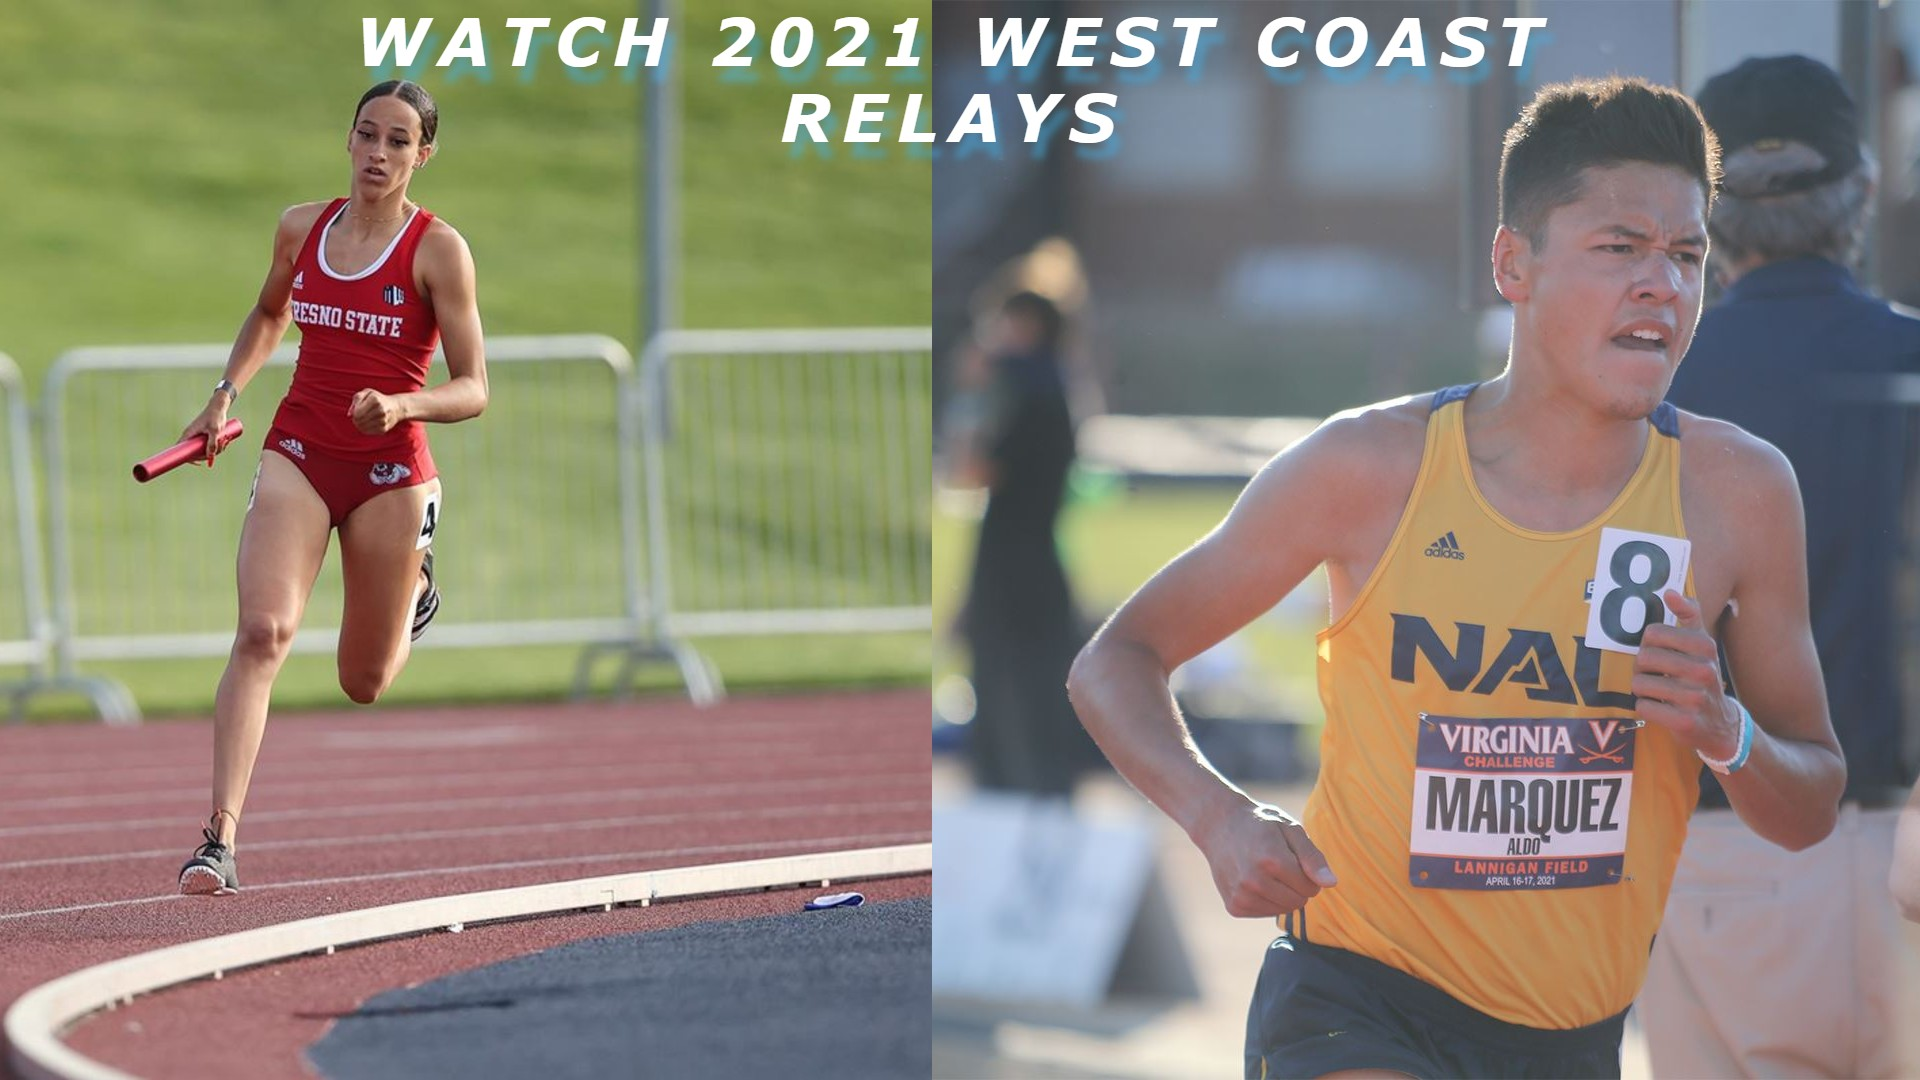 West_Coast_Relays_2021_watch_live_stream